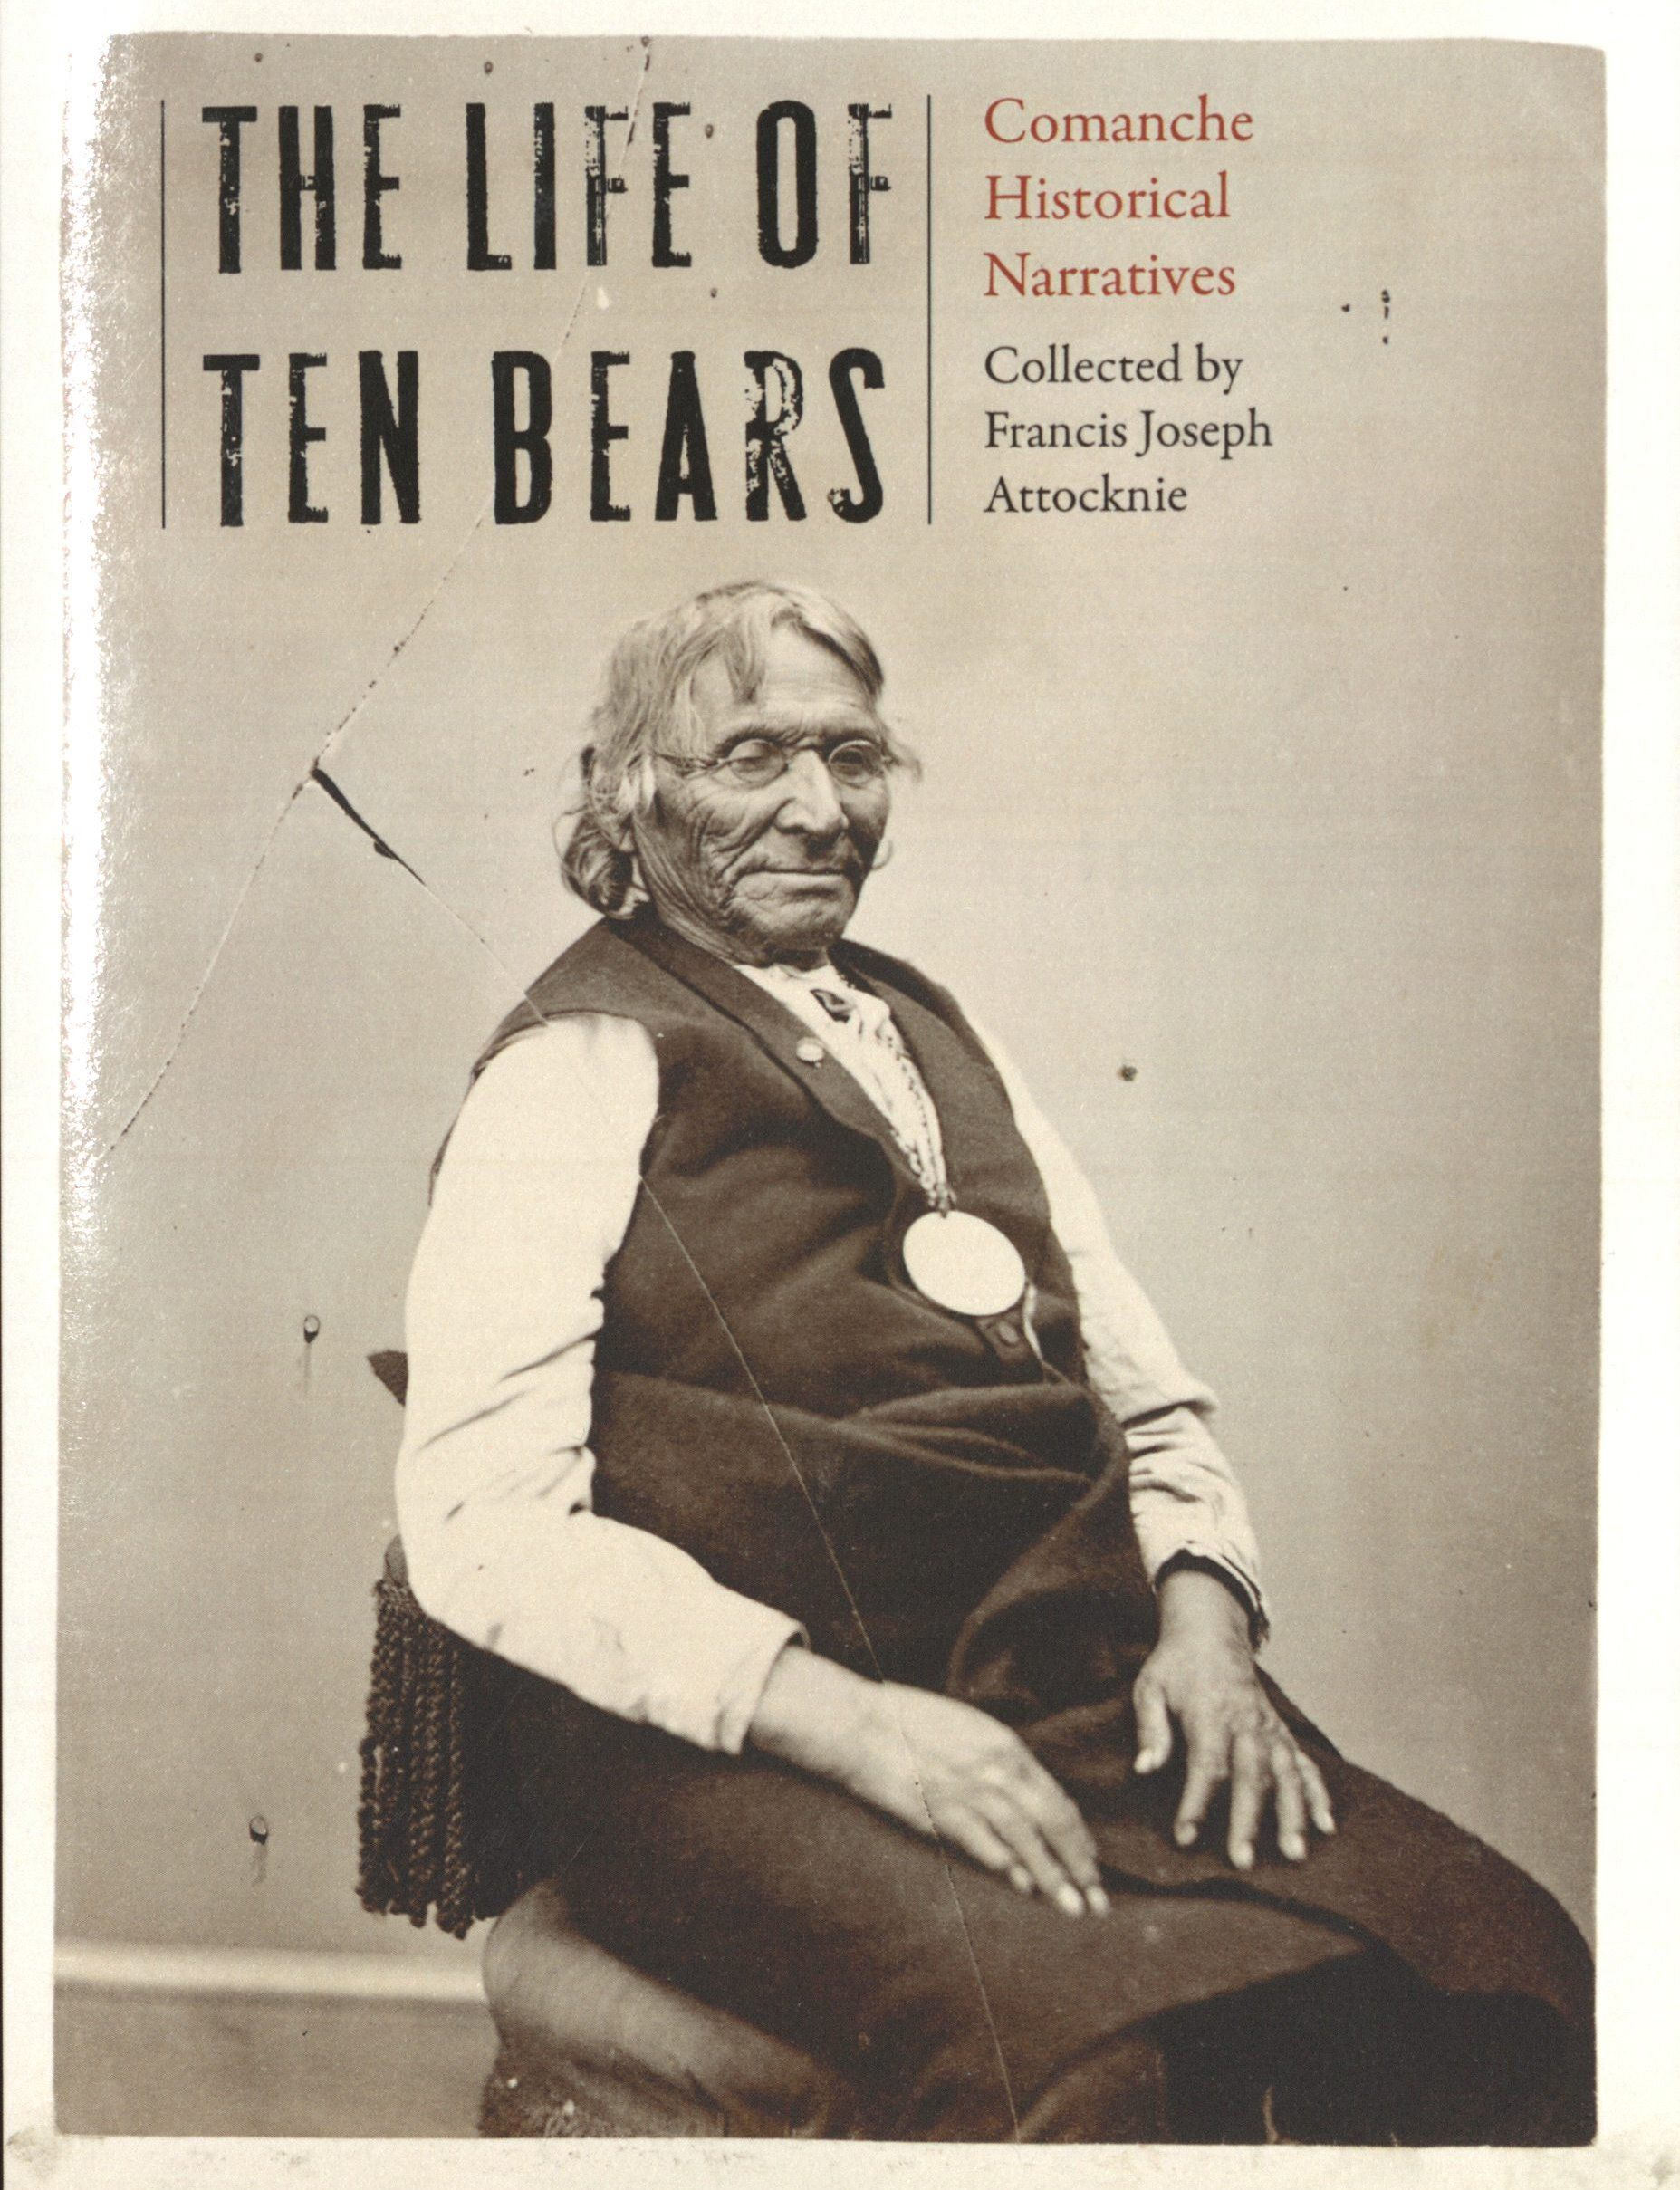 Kavanagh, Thomas W., ed. The Life of Ten Bears: Comanche Historical Narratives. Lincoln: University of Nebraska Press, 2016. Print.